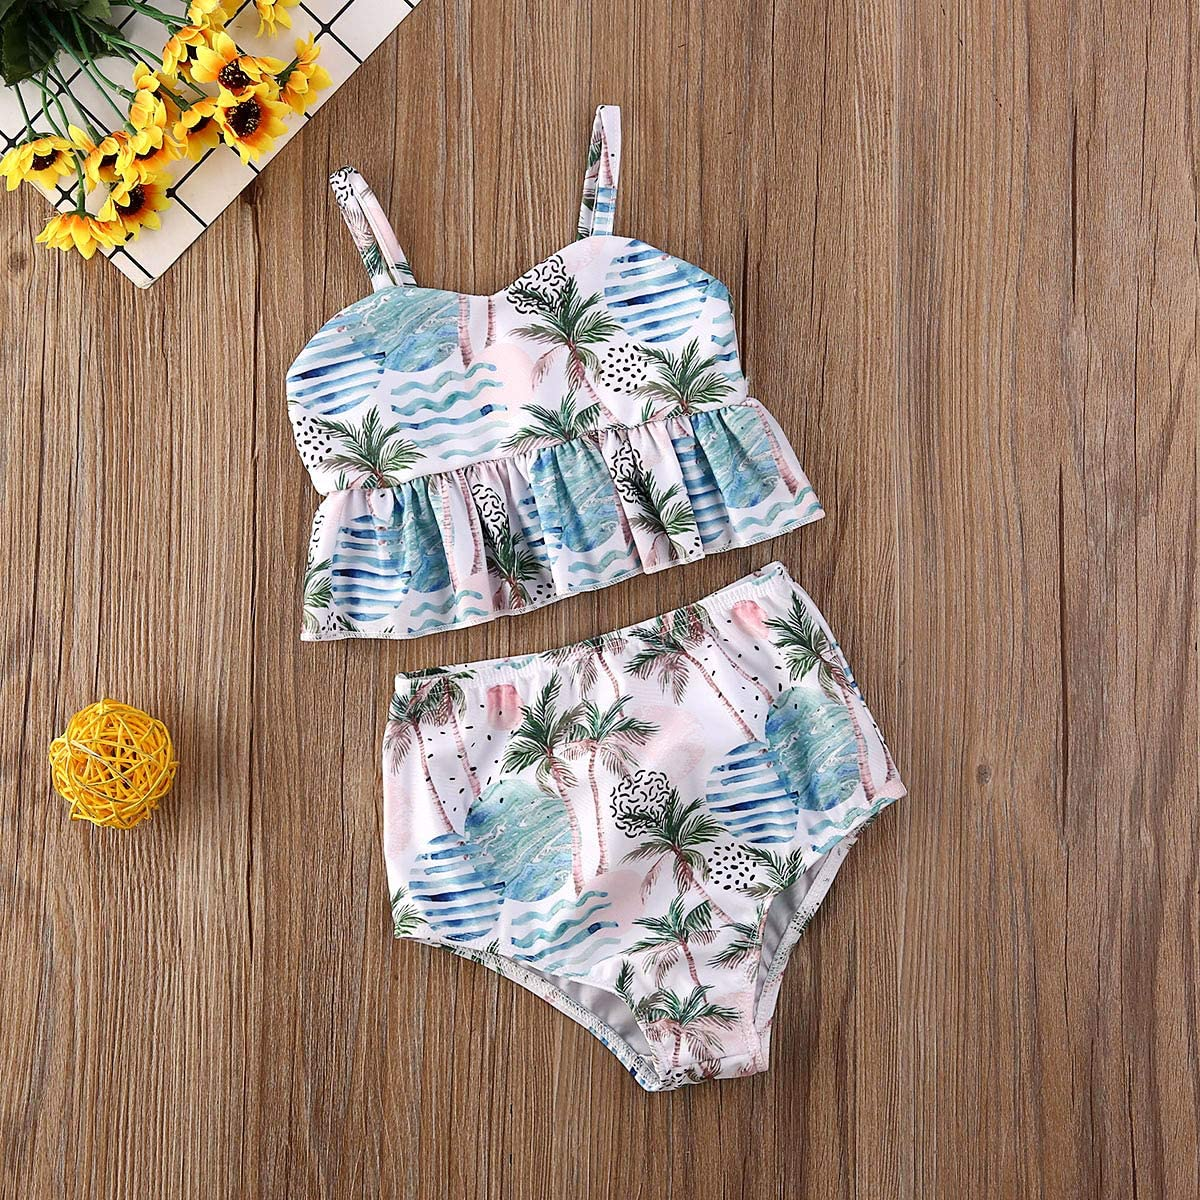 WGOO Toddler Baby Girls Swimsuit Two Piece Floral Ruffle Halter Tops Bowknot Bottom Beachwear Bathing Suit